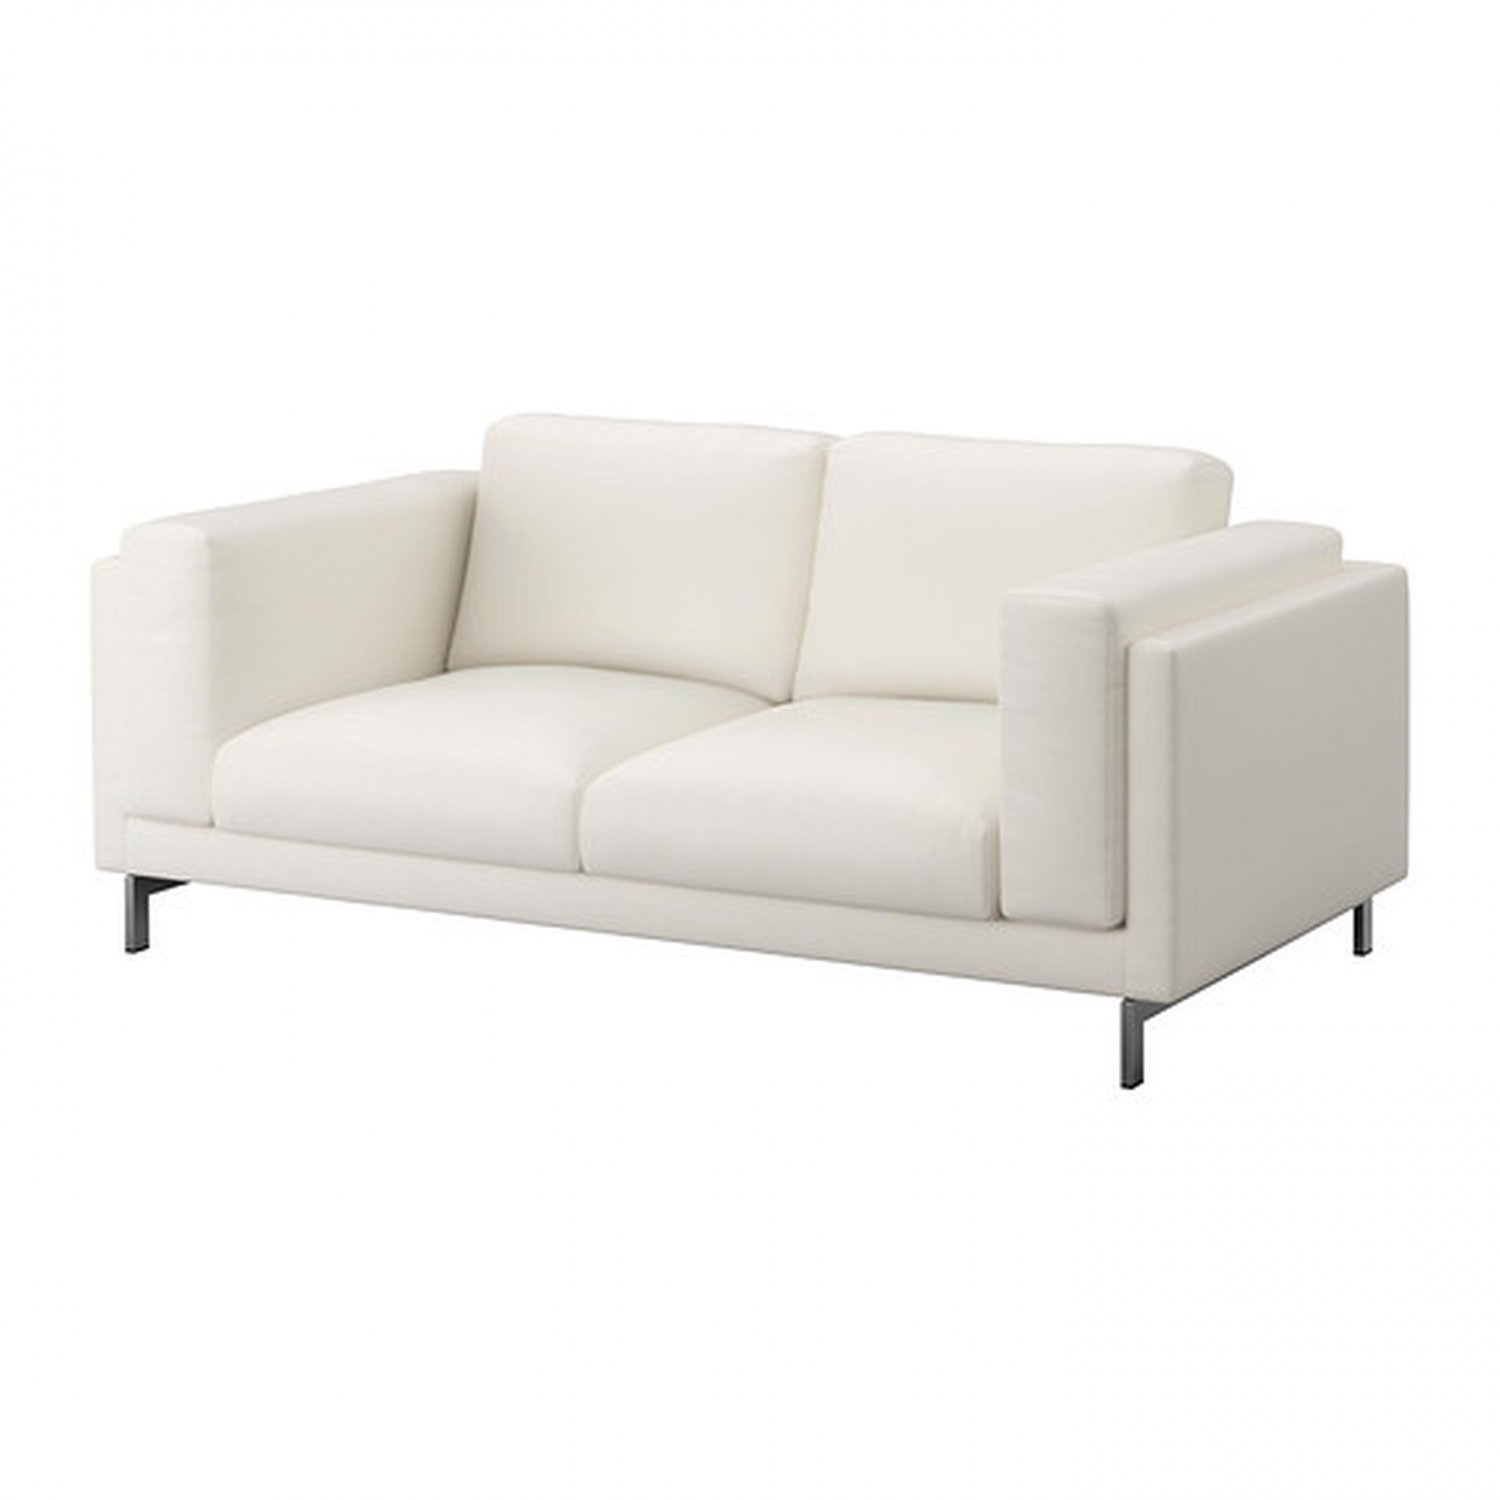 Ikea Nockeby Two Seat Sofa Ikea Nockeby 2 Seat Sofa Slipcover Loveseat Cover Risane